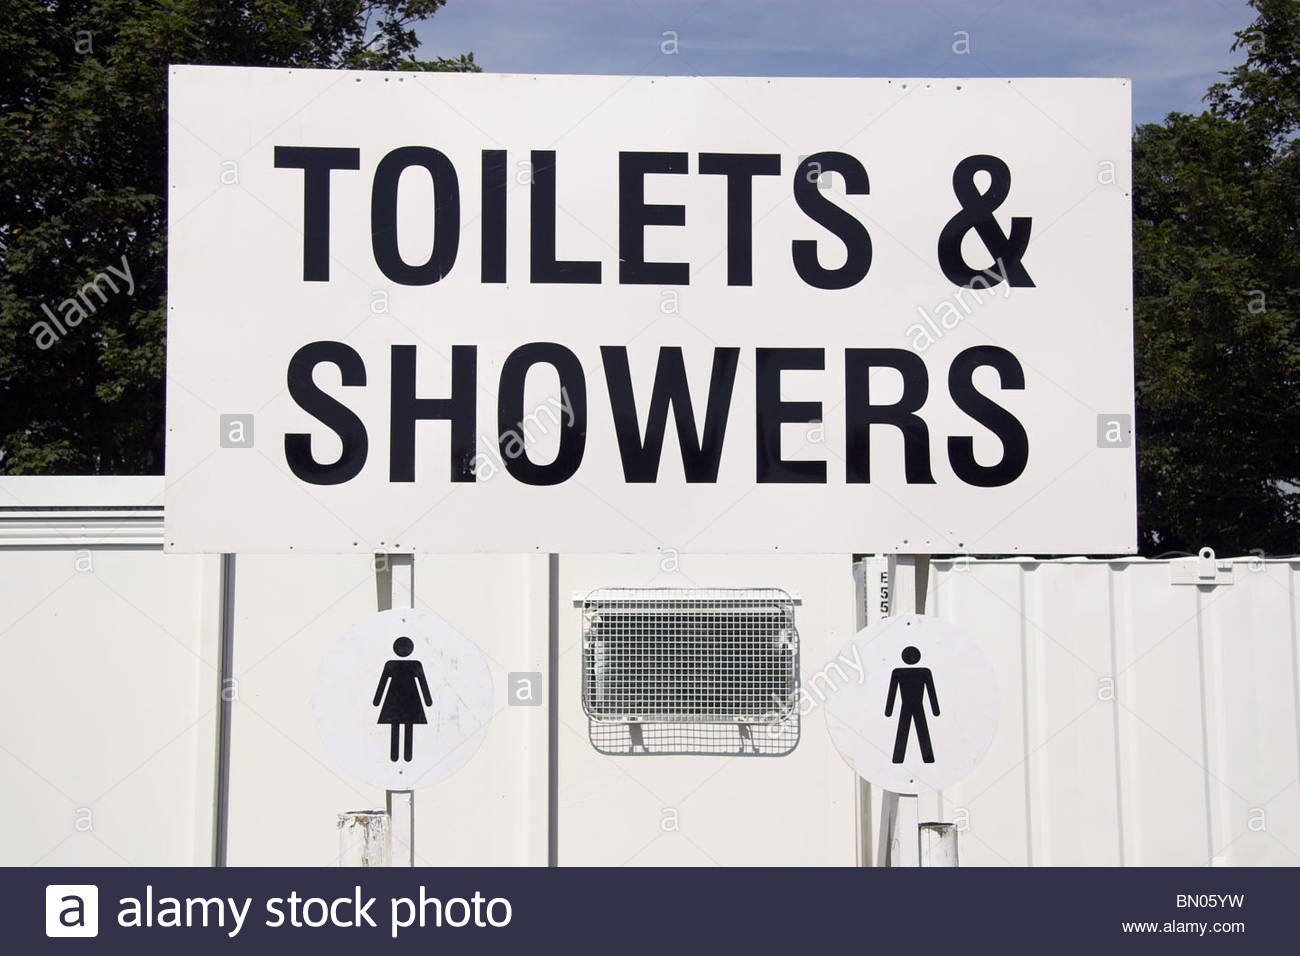 Toilets and Showers at a festival site, UK Stock Photo: 30122845 - Alamy